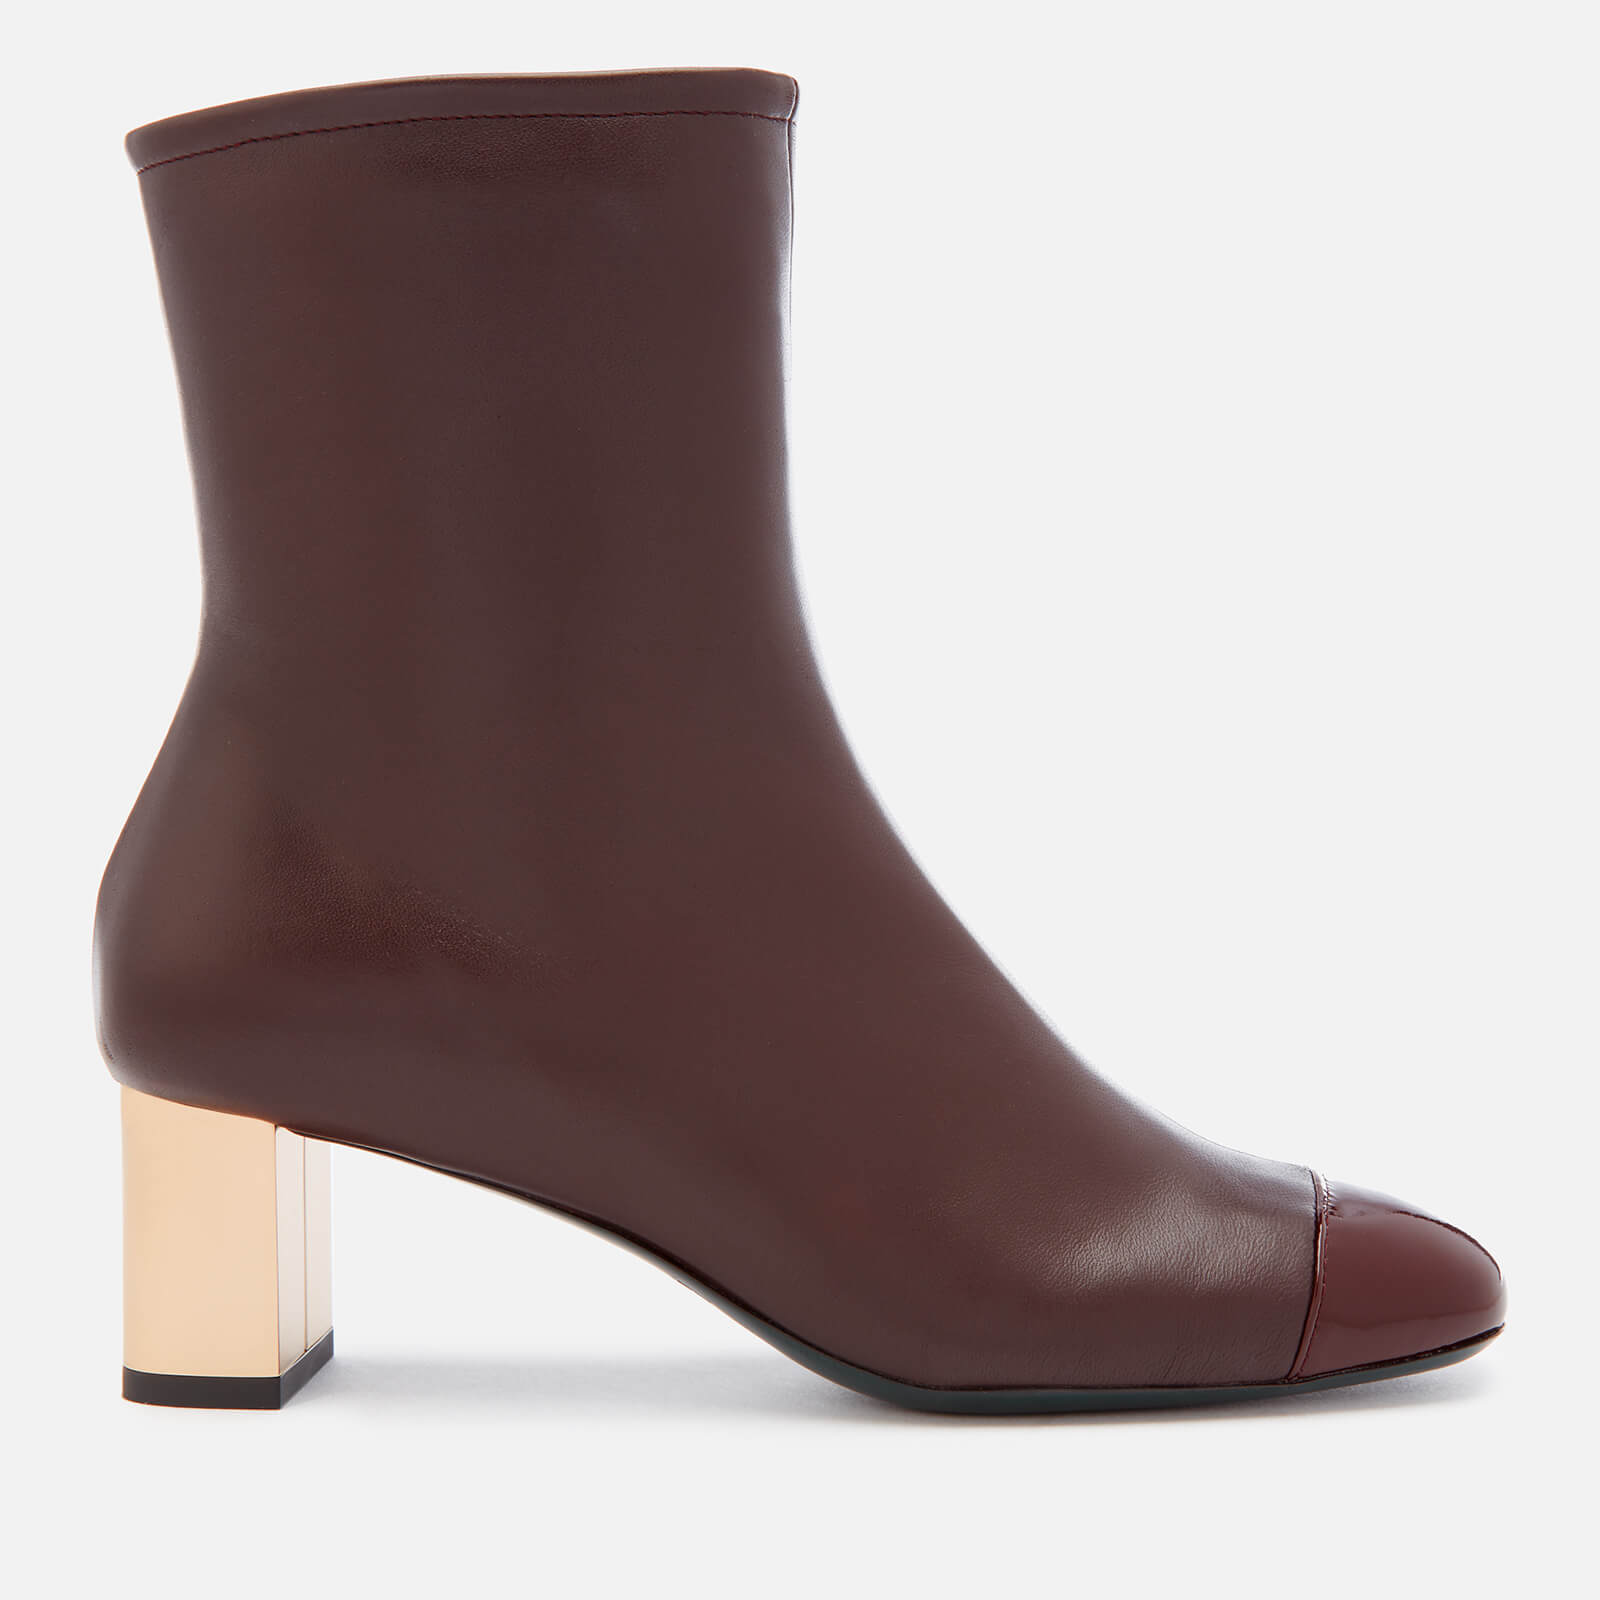 8f2587fcf72 Mulberry Women's Patent Heeled Ankle Boots - Oxblood - Free UK Delivery over  £50